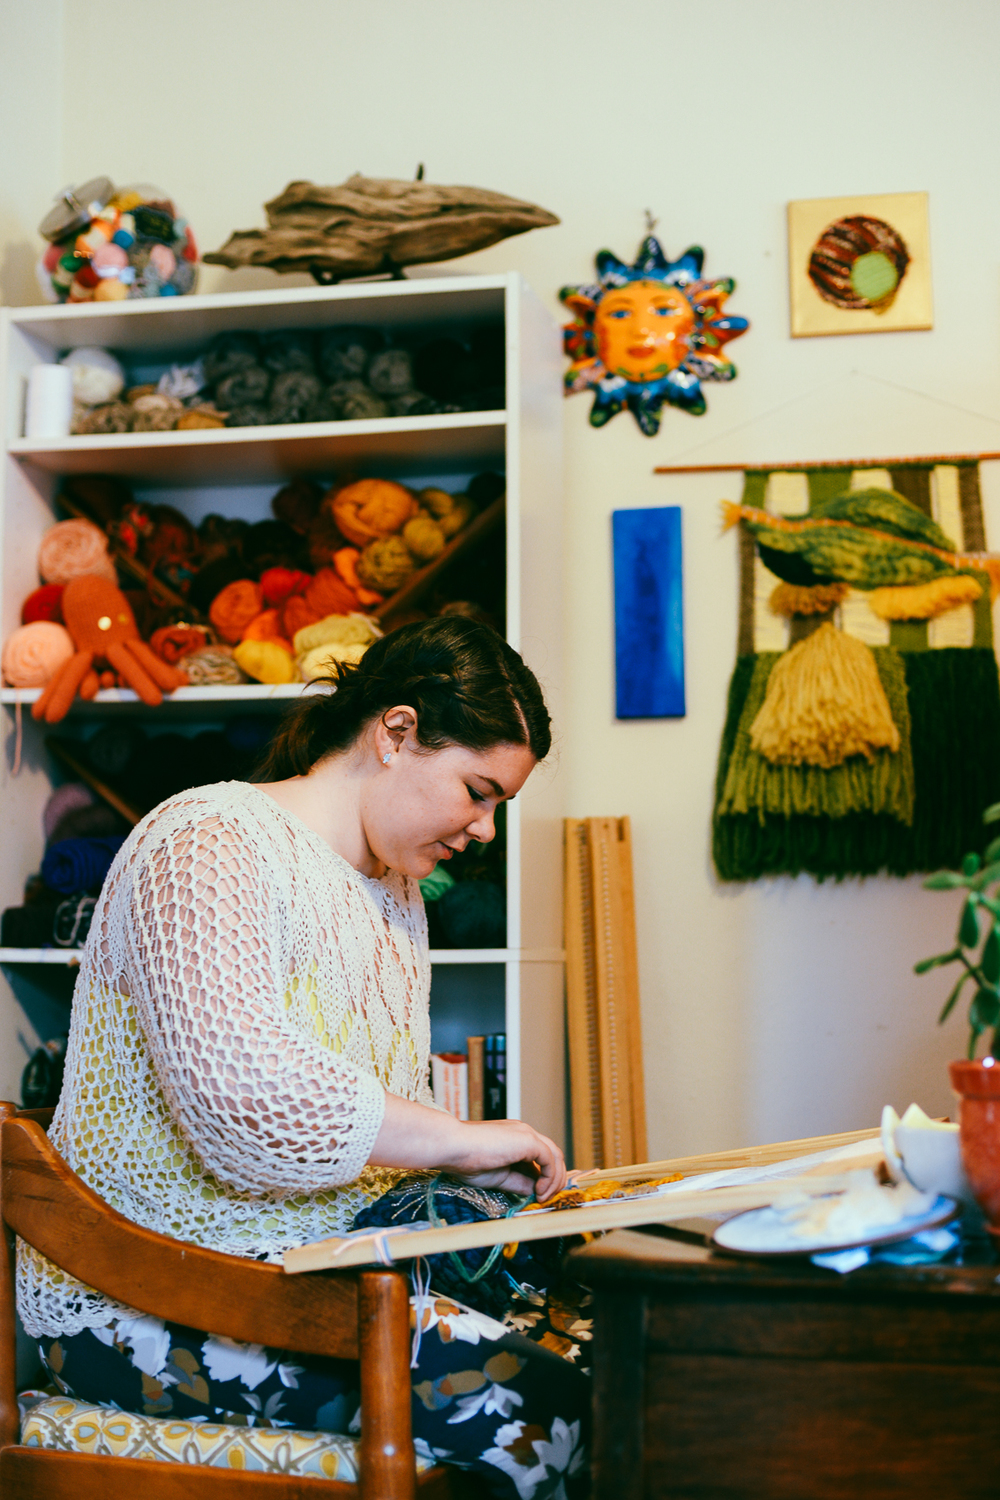 Asheville Folk Interview with Sally Garner, Fiber & Textile Artist in Asheville, North Carolina. Photos by Shonie Joy Kuykendall. See more artist interviews at ashevillefolk.com